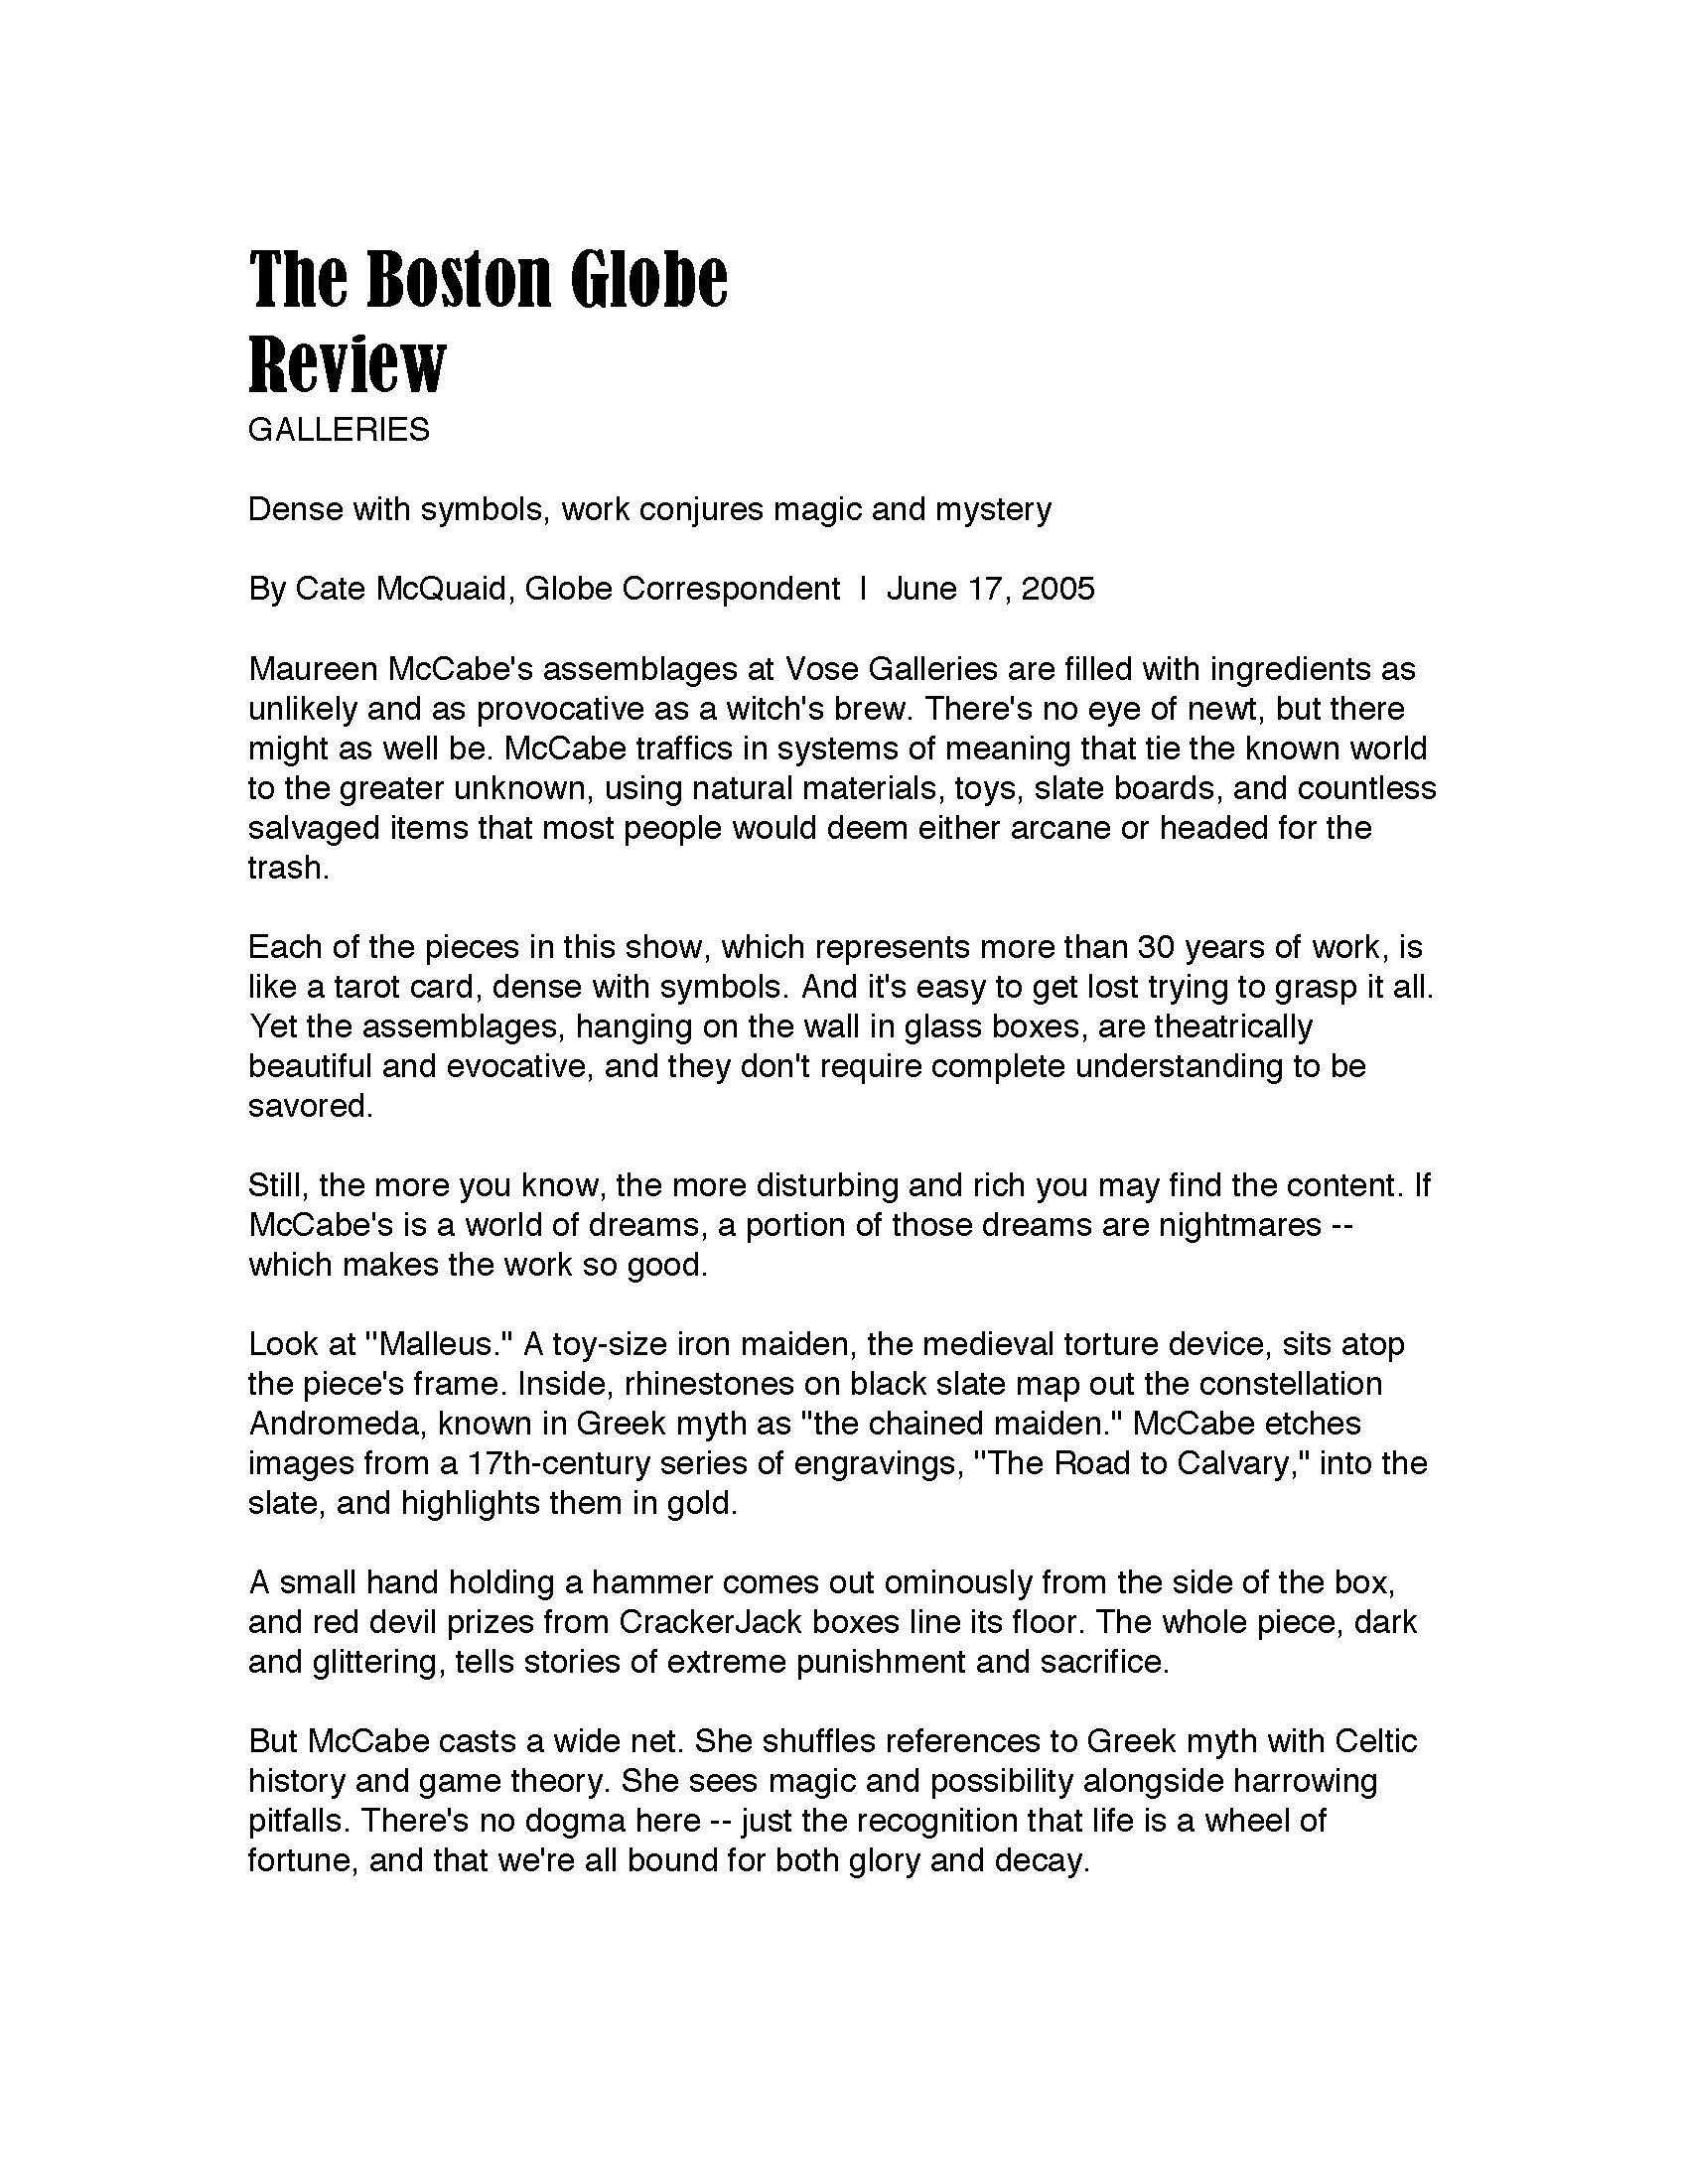 BostonGlobeReview_img_Page_1.jpg